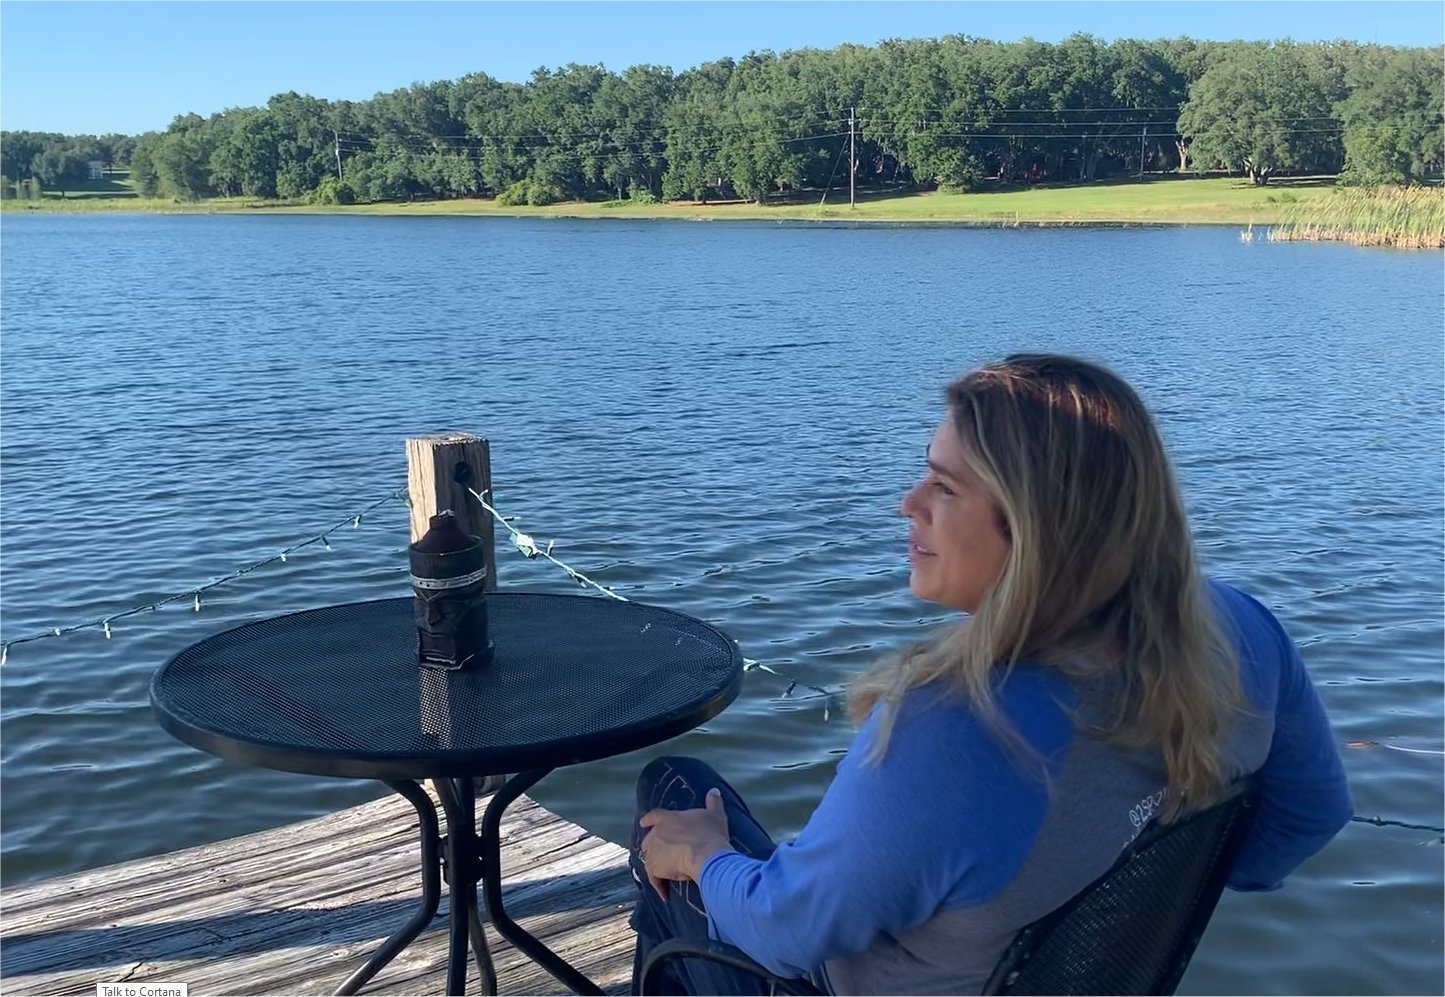 waterfront vacation rental home with access to a lake